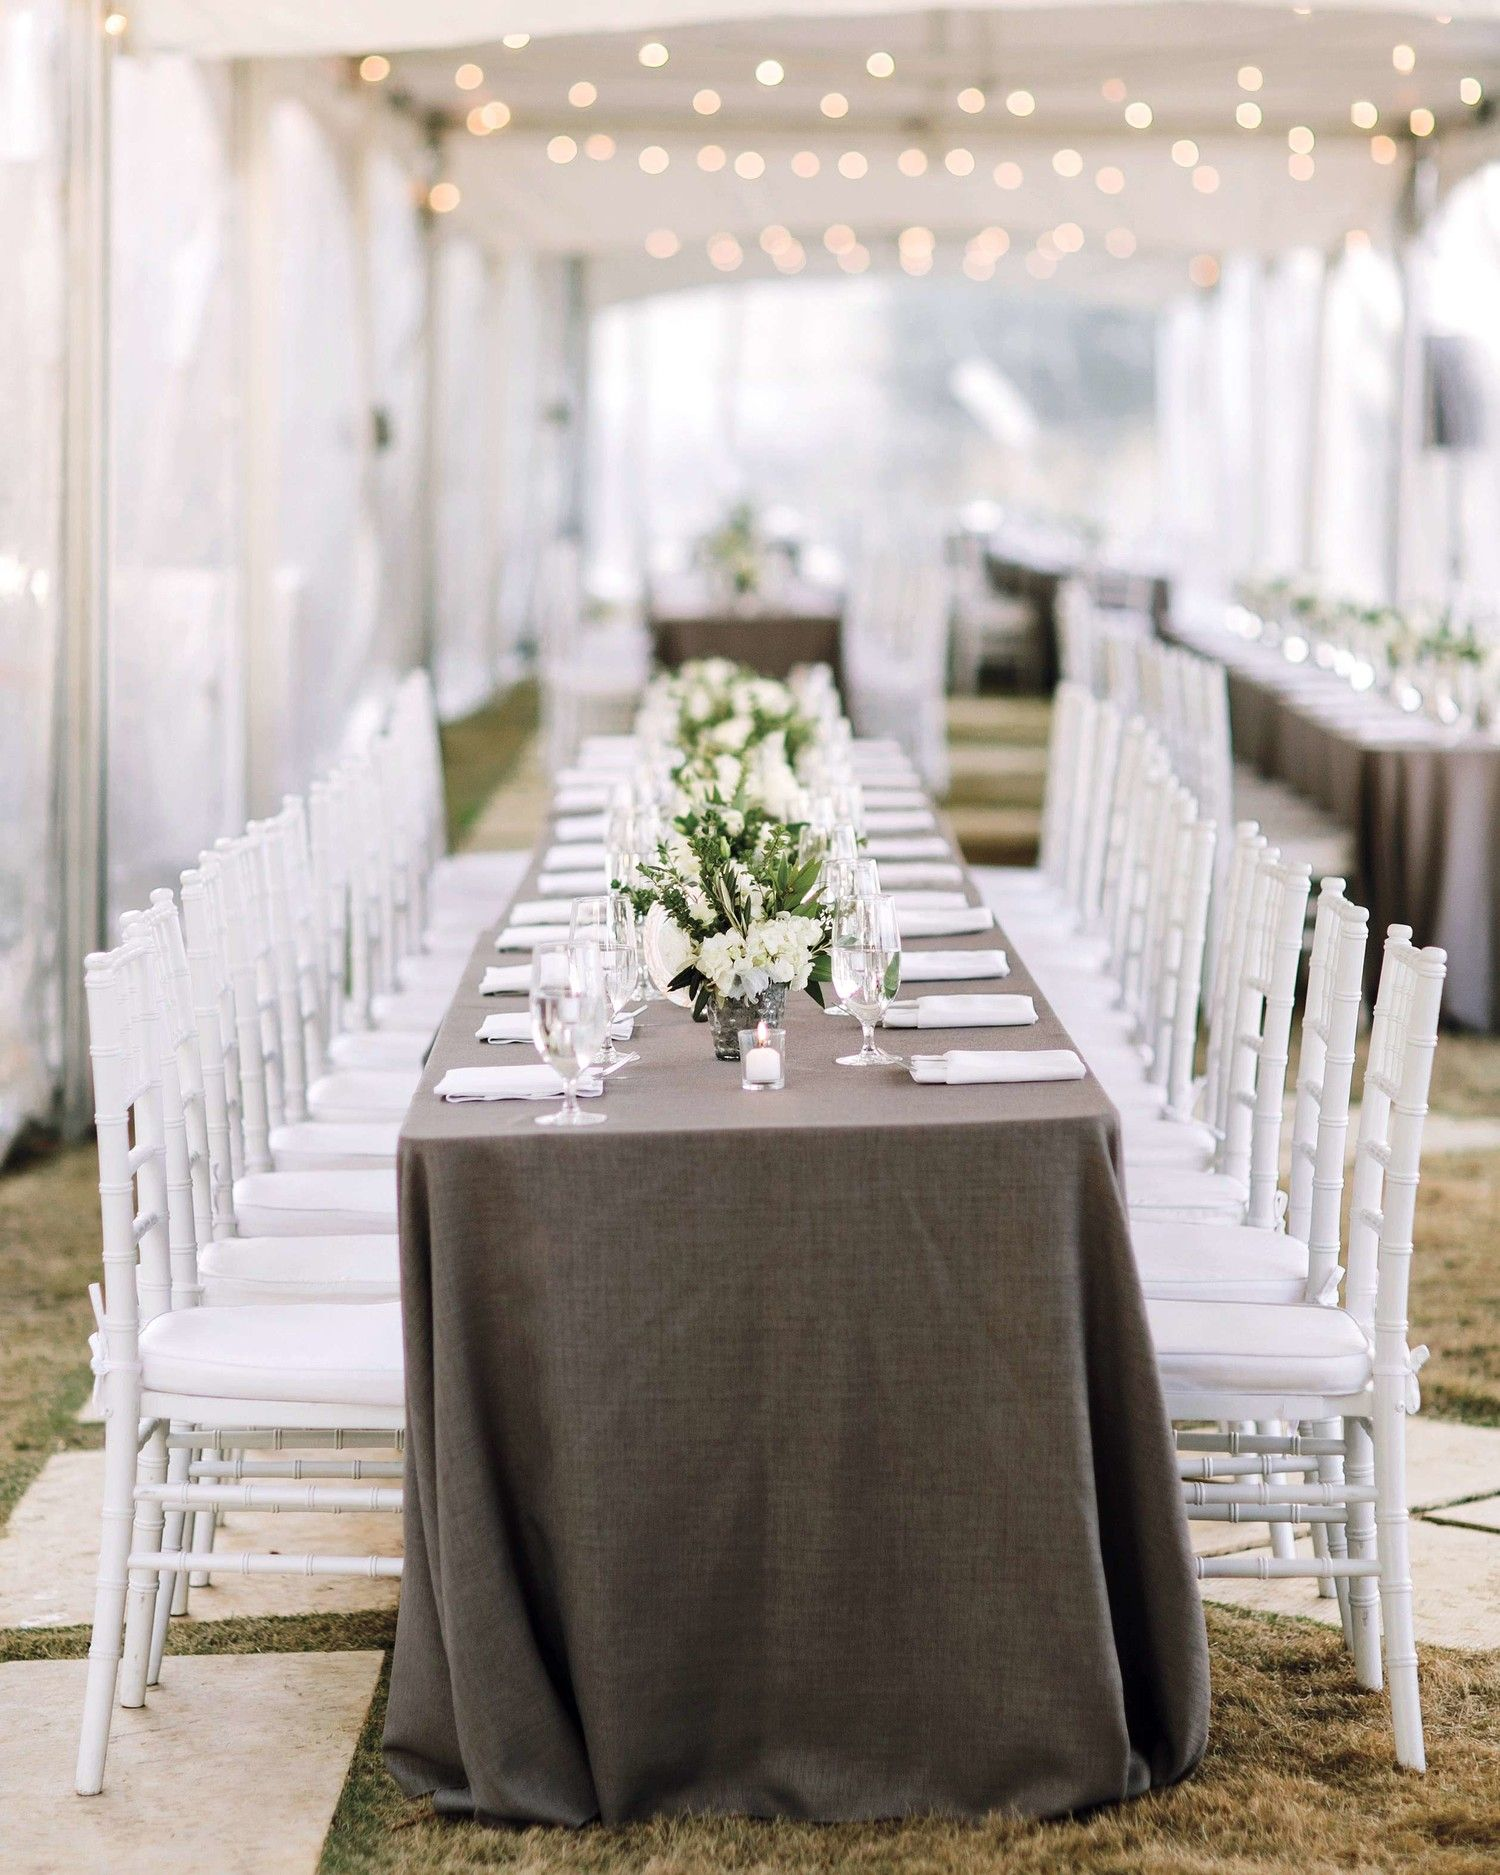 42 Stunning Banquet Tables for Your Reception | Grey tablecloths ...